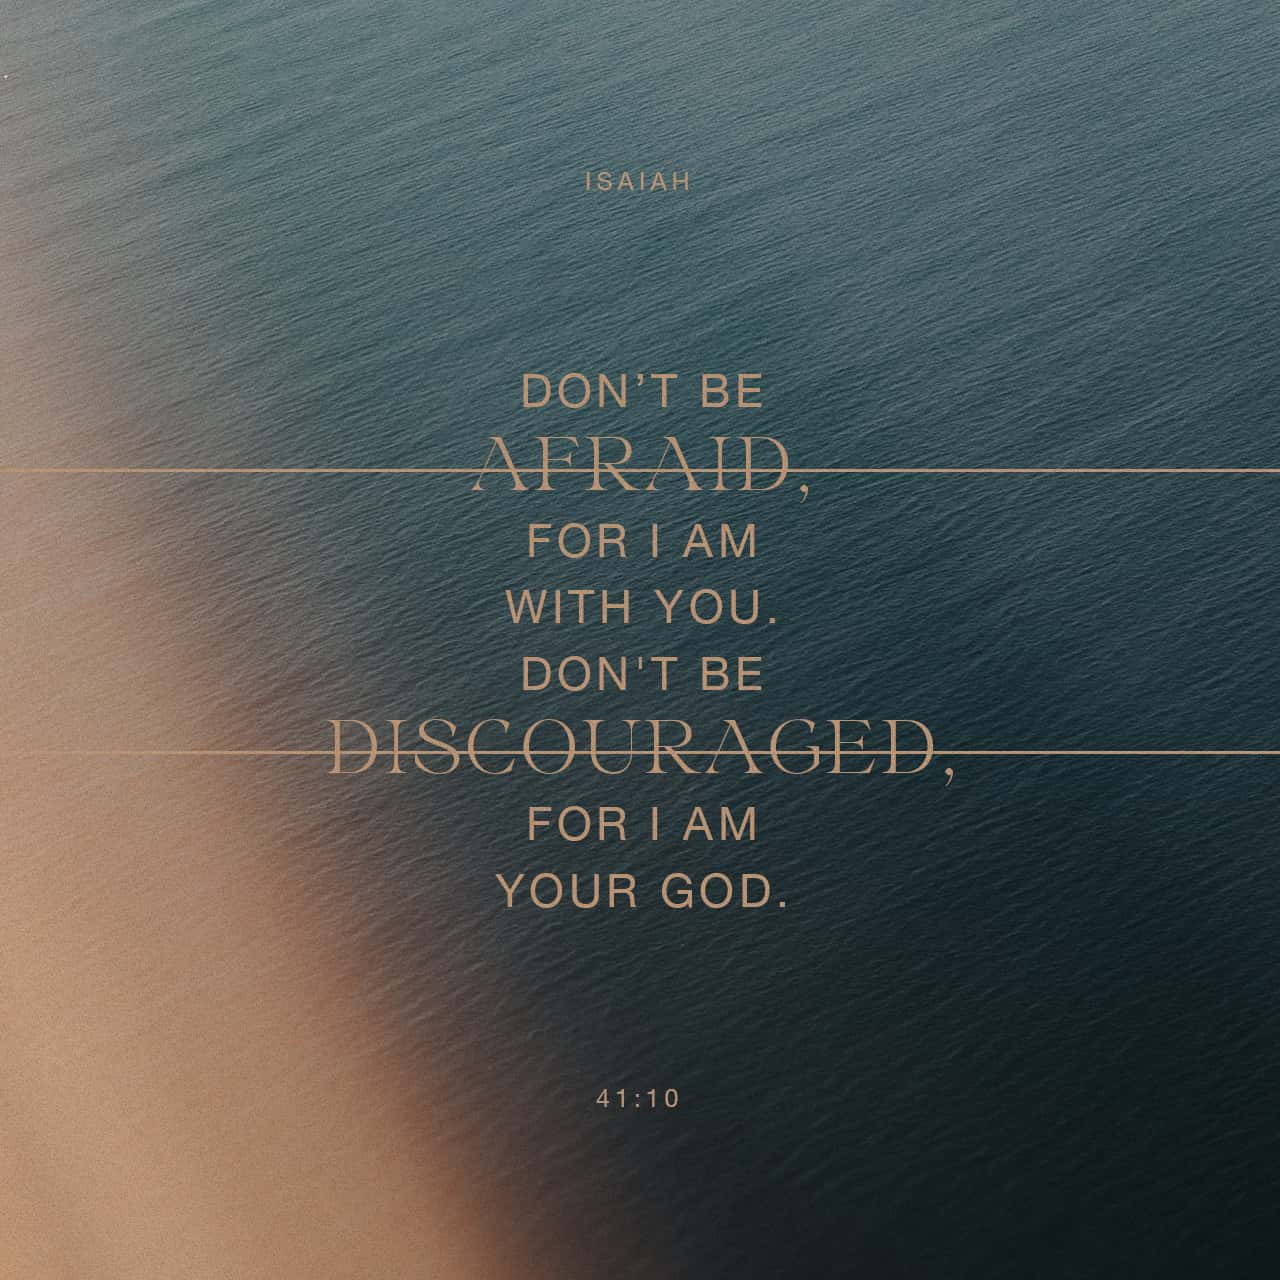 Isaiah 41:10 Fear not, for I am with you; Be not dismayed, for I am your  God. I will strengthen you, Yes, I will help you, I will uphold you with My